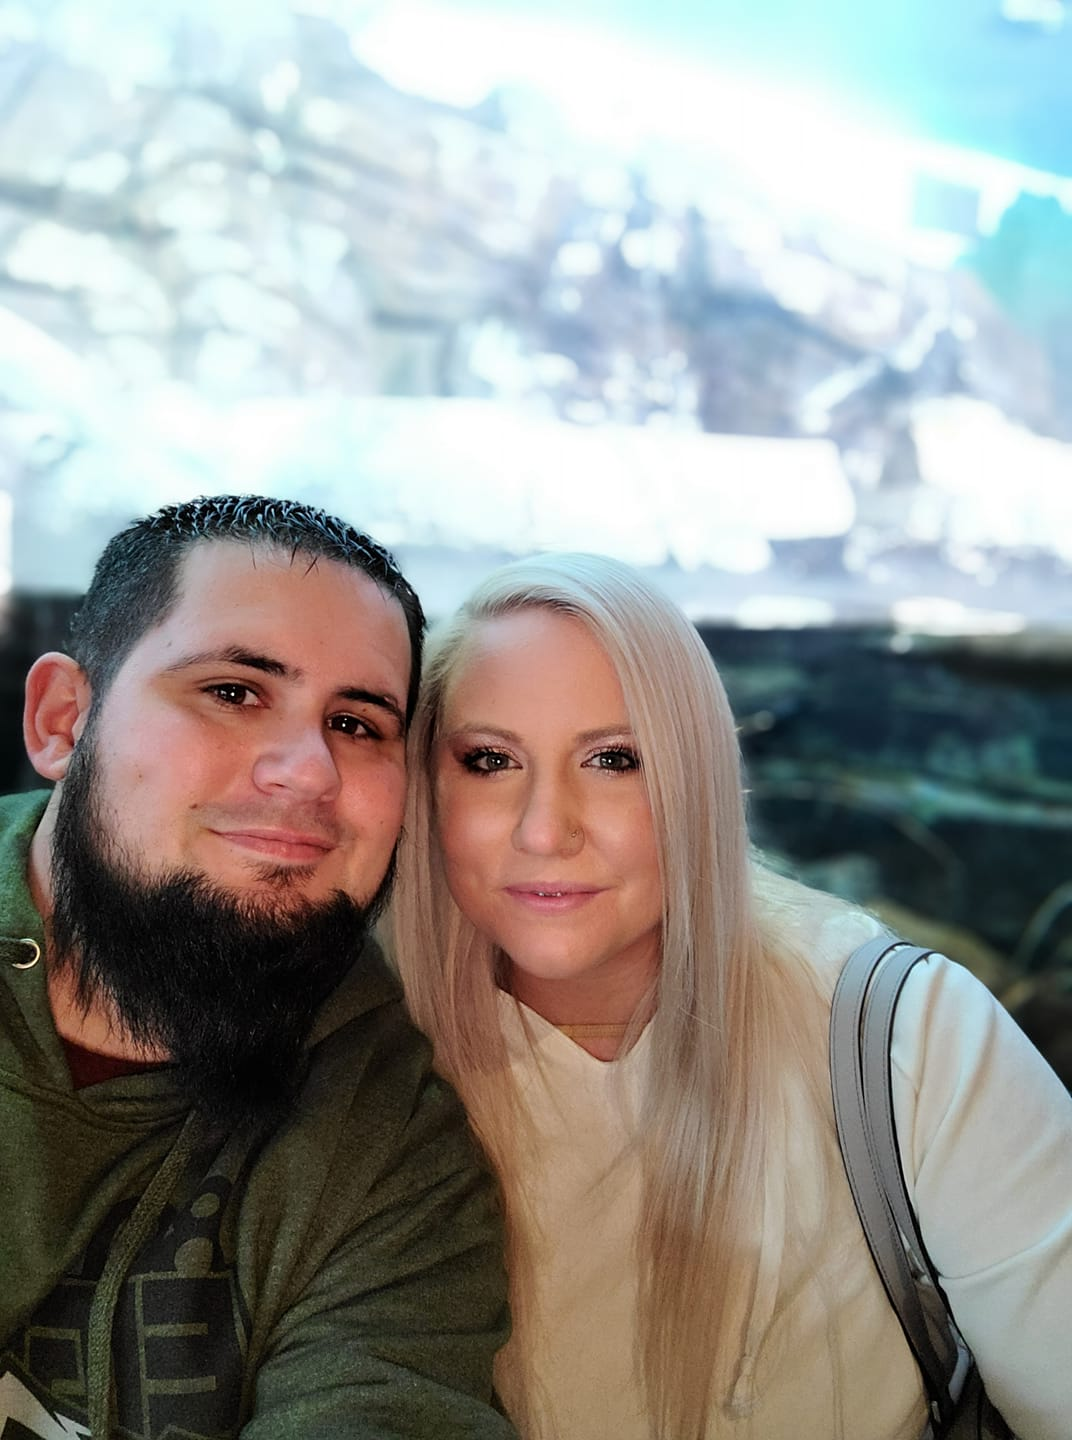 Ashley McRae met her husband in high school and they have been together for 14 years.